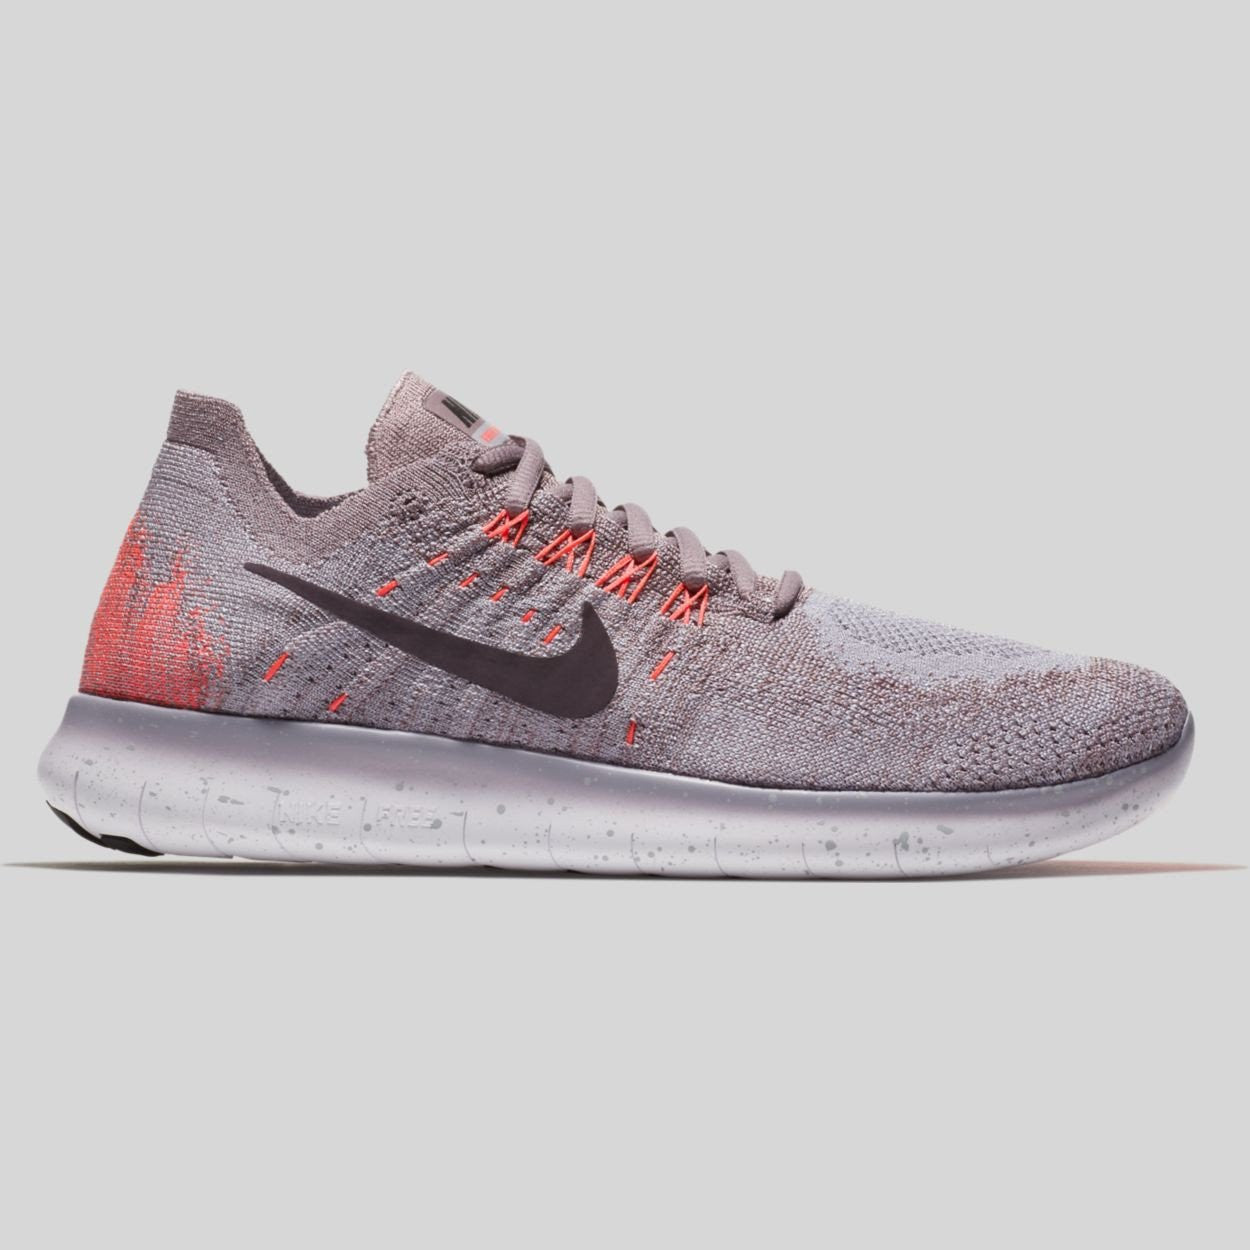 Nike Wmns Free RN Flyknit 2017 Taupe Grey Port Wine Solar Red (880844-200